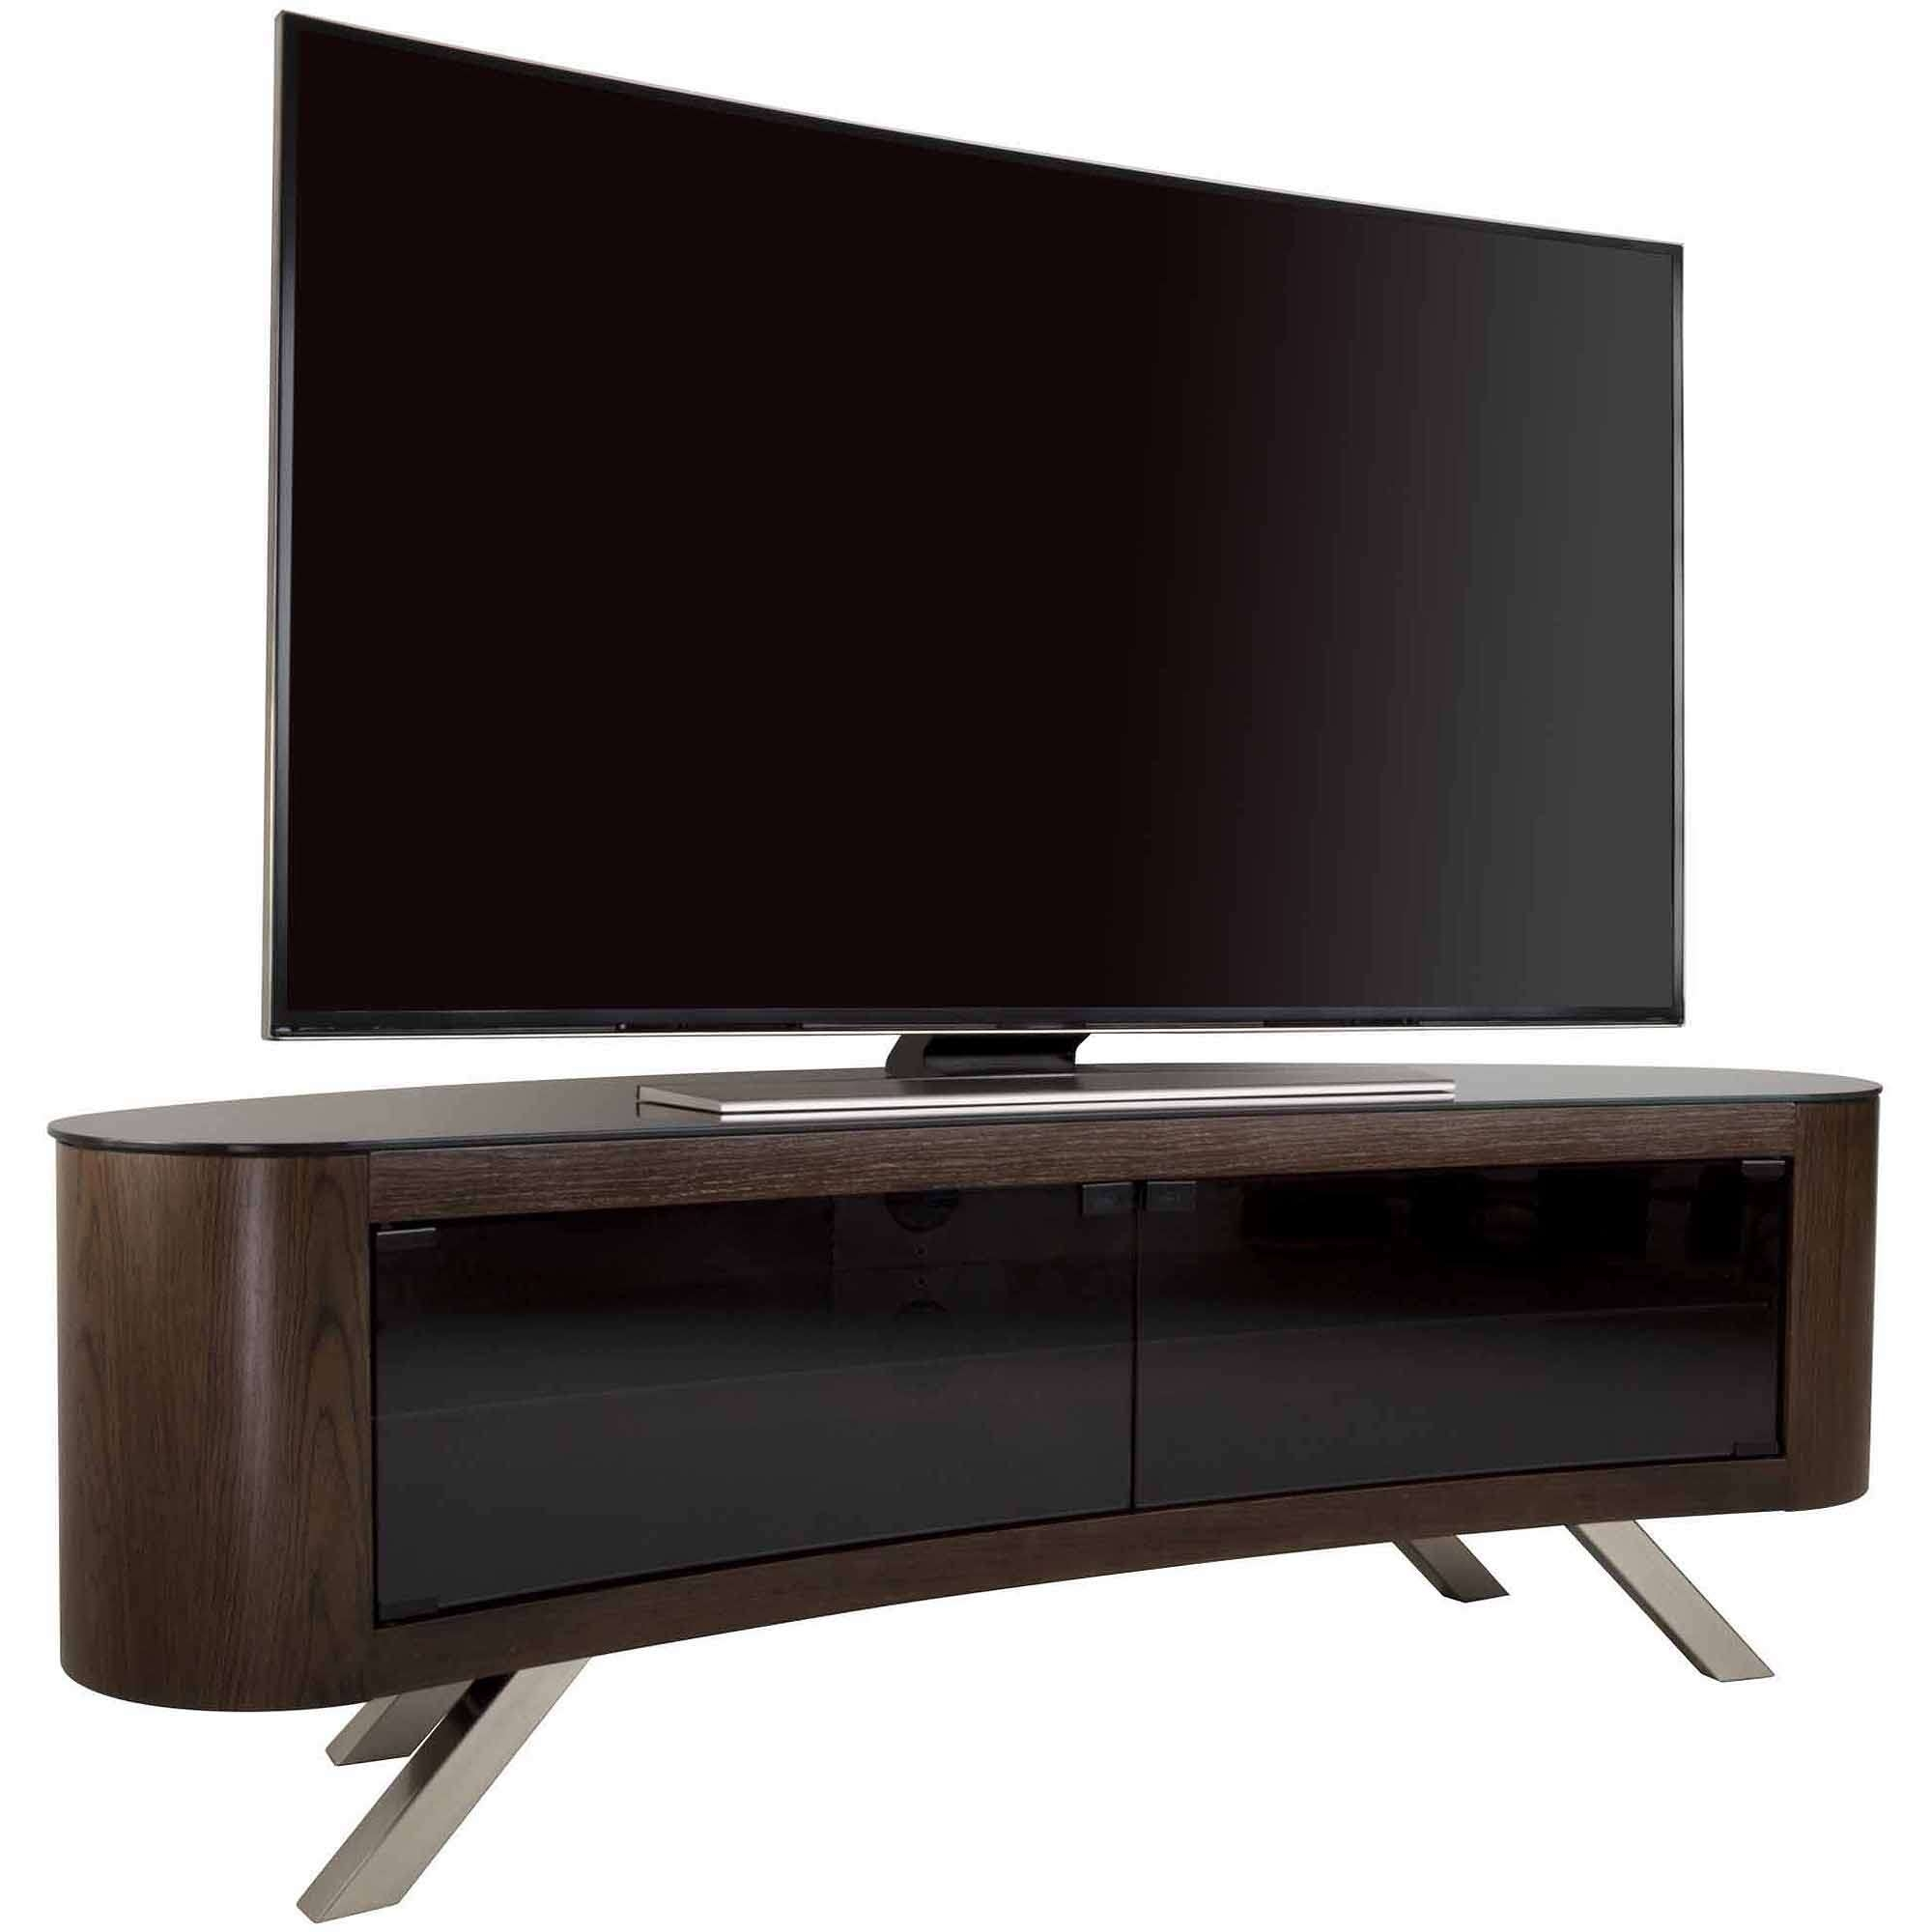 Tv Stands For Inch Avf Bay Curved Stand Tvs Up To 0E2B4Cfbe0E8 1 With Tv Stands For 70 Inch Tvs (View 17 of 20)